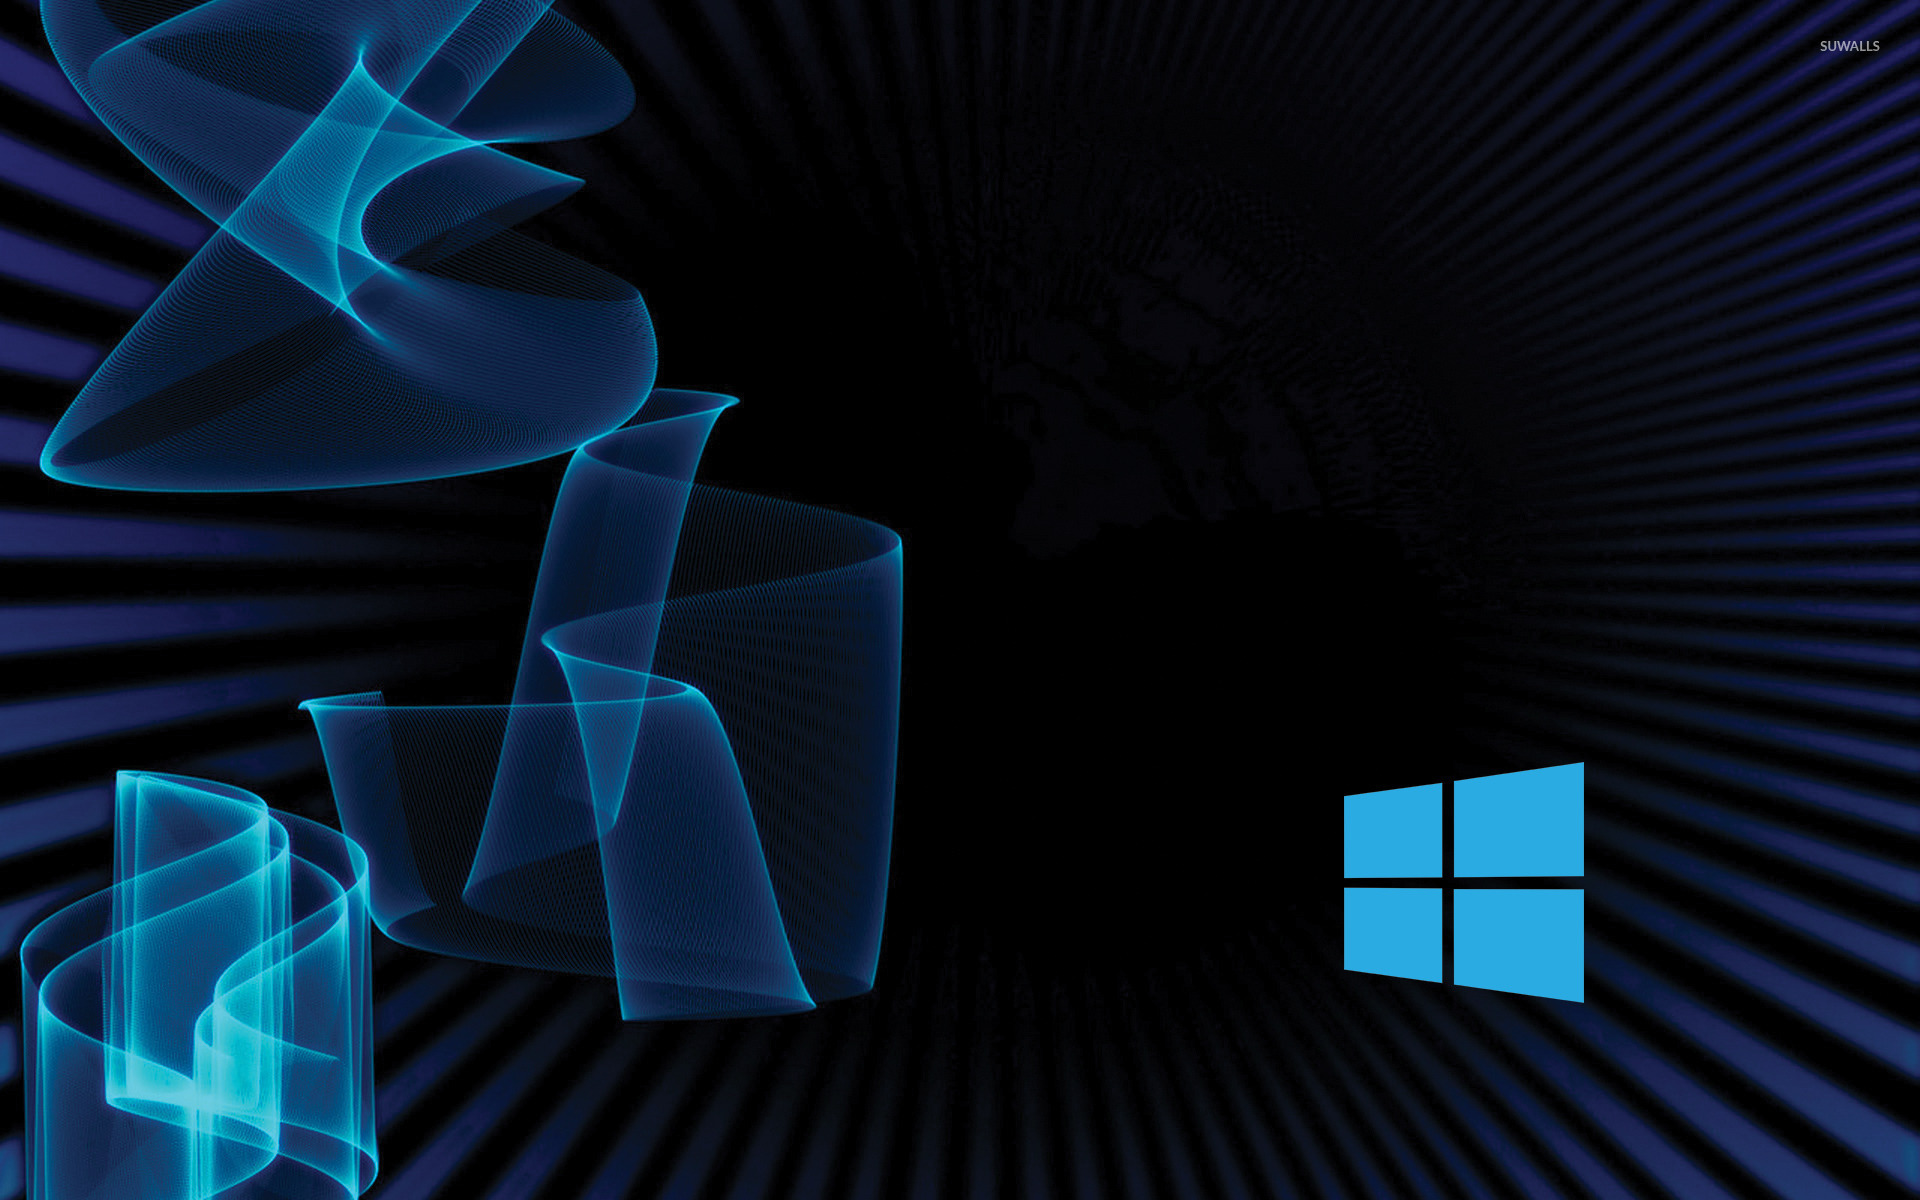 Windows 10 simple blue logo on blue rays and waves wallpaper 1680x1050